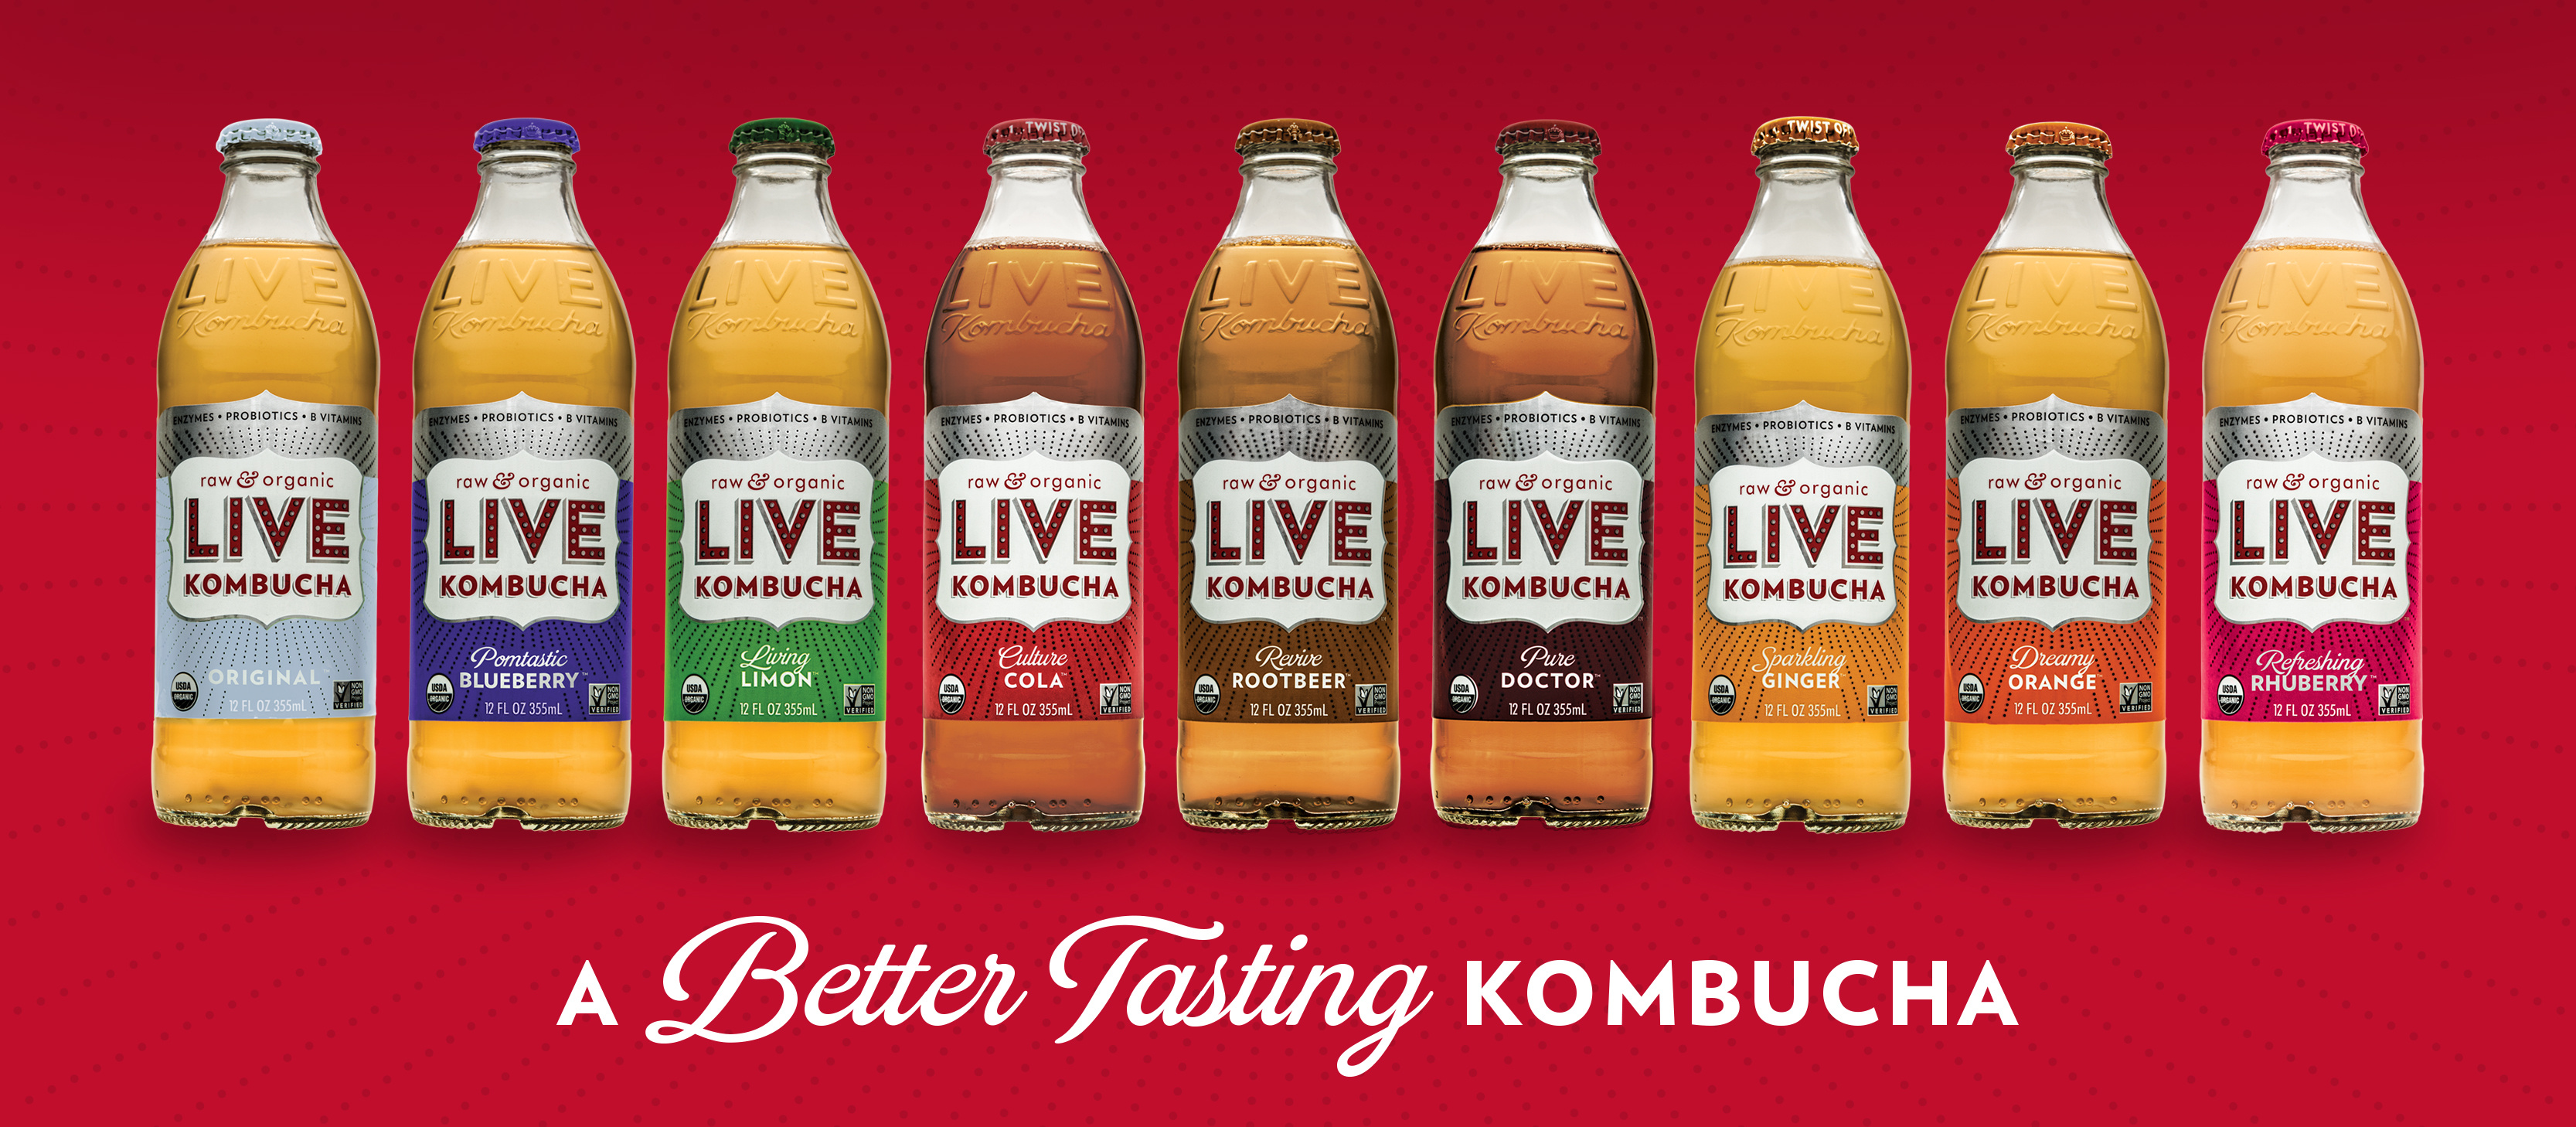 Live-Website-Kombucha-Hero.jpg